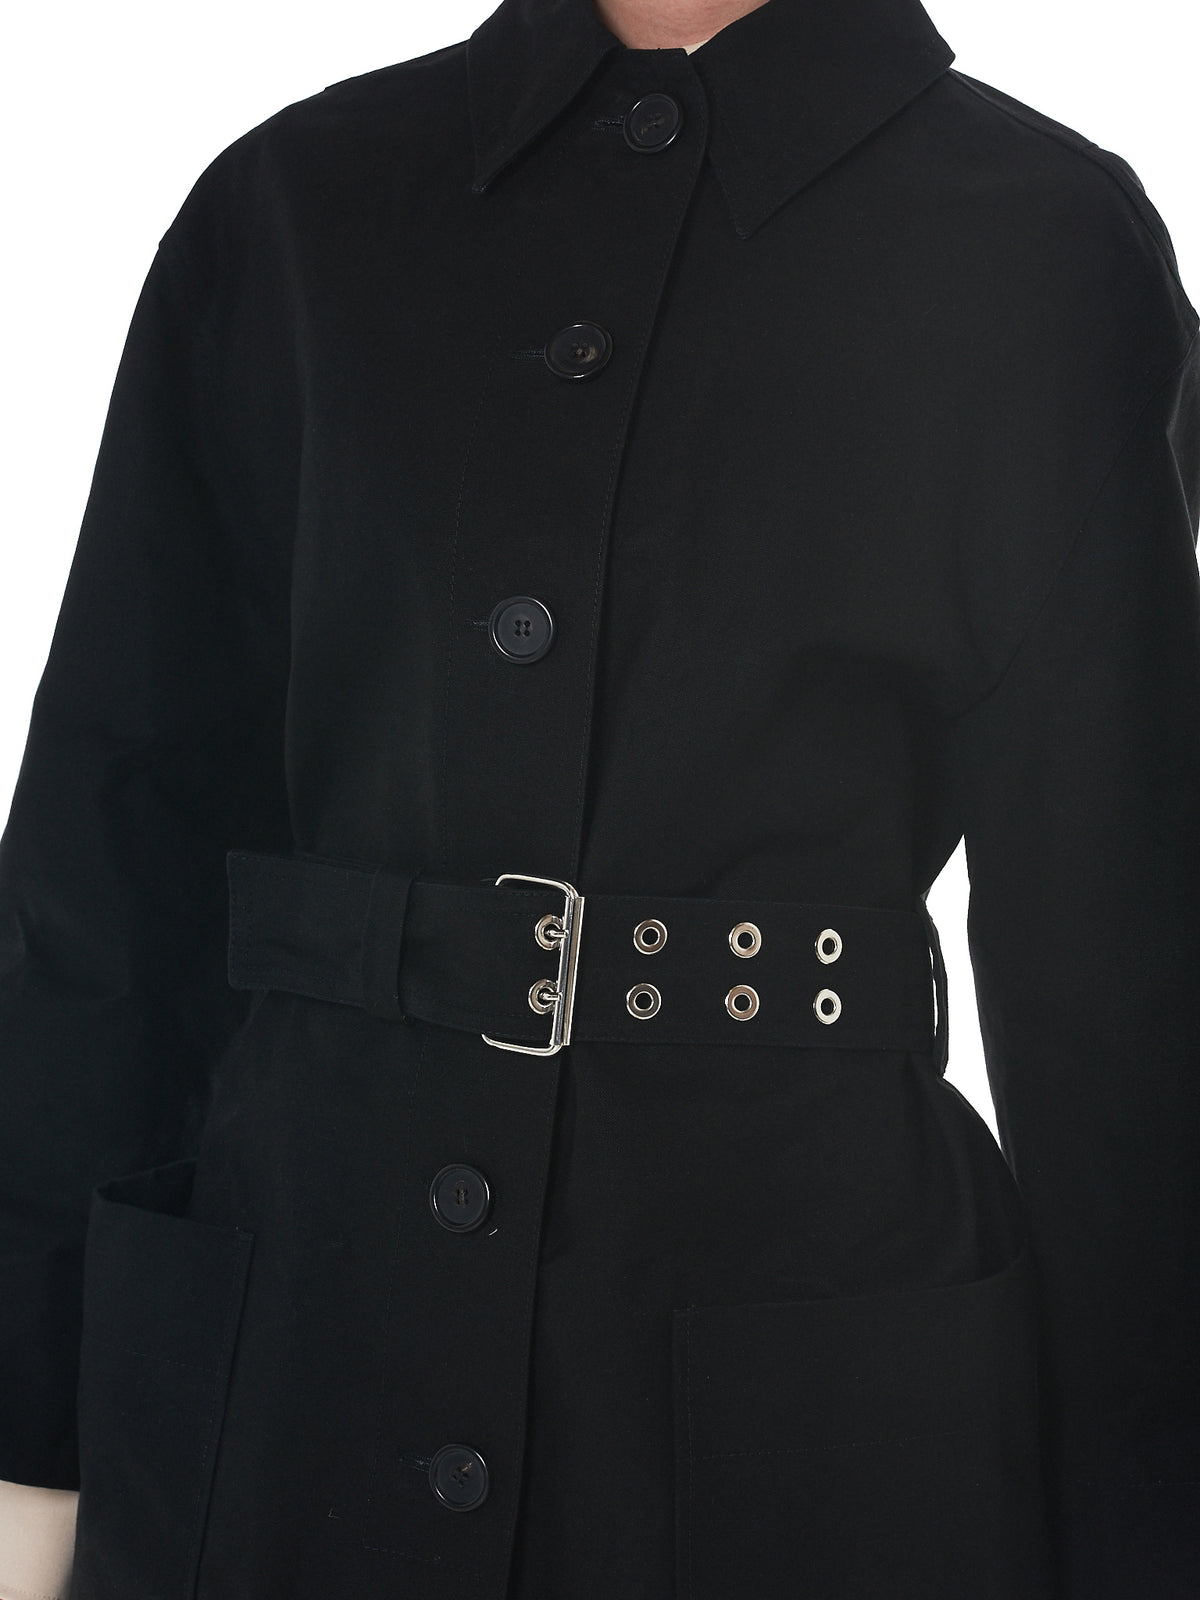 Kwaidan Oversized Coat - Hlorenzo Detail 2